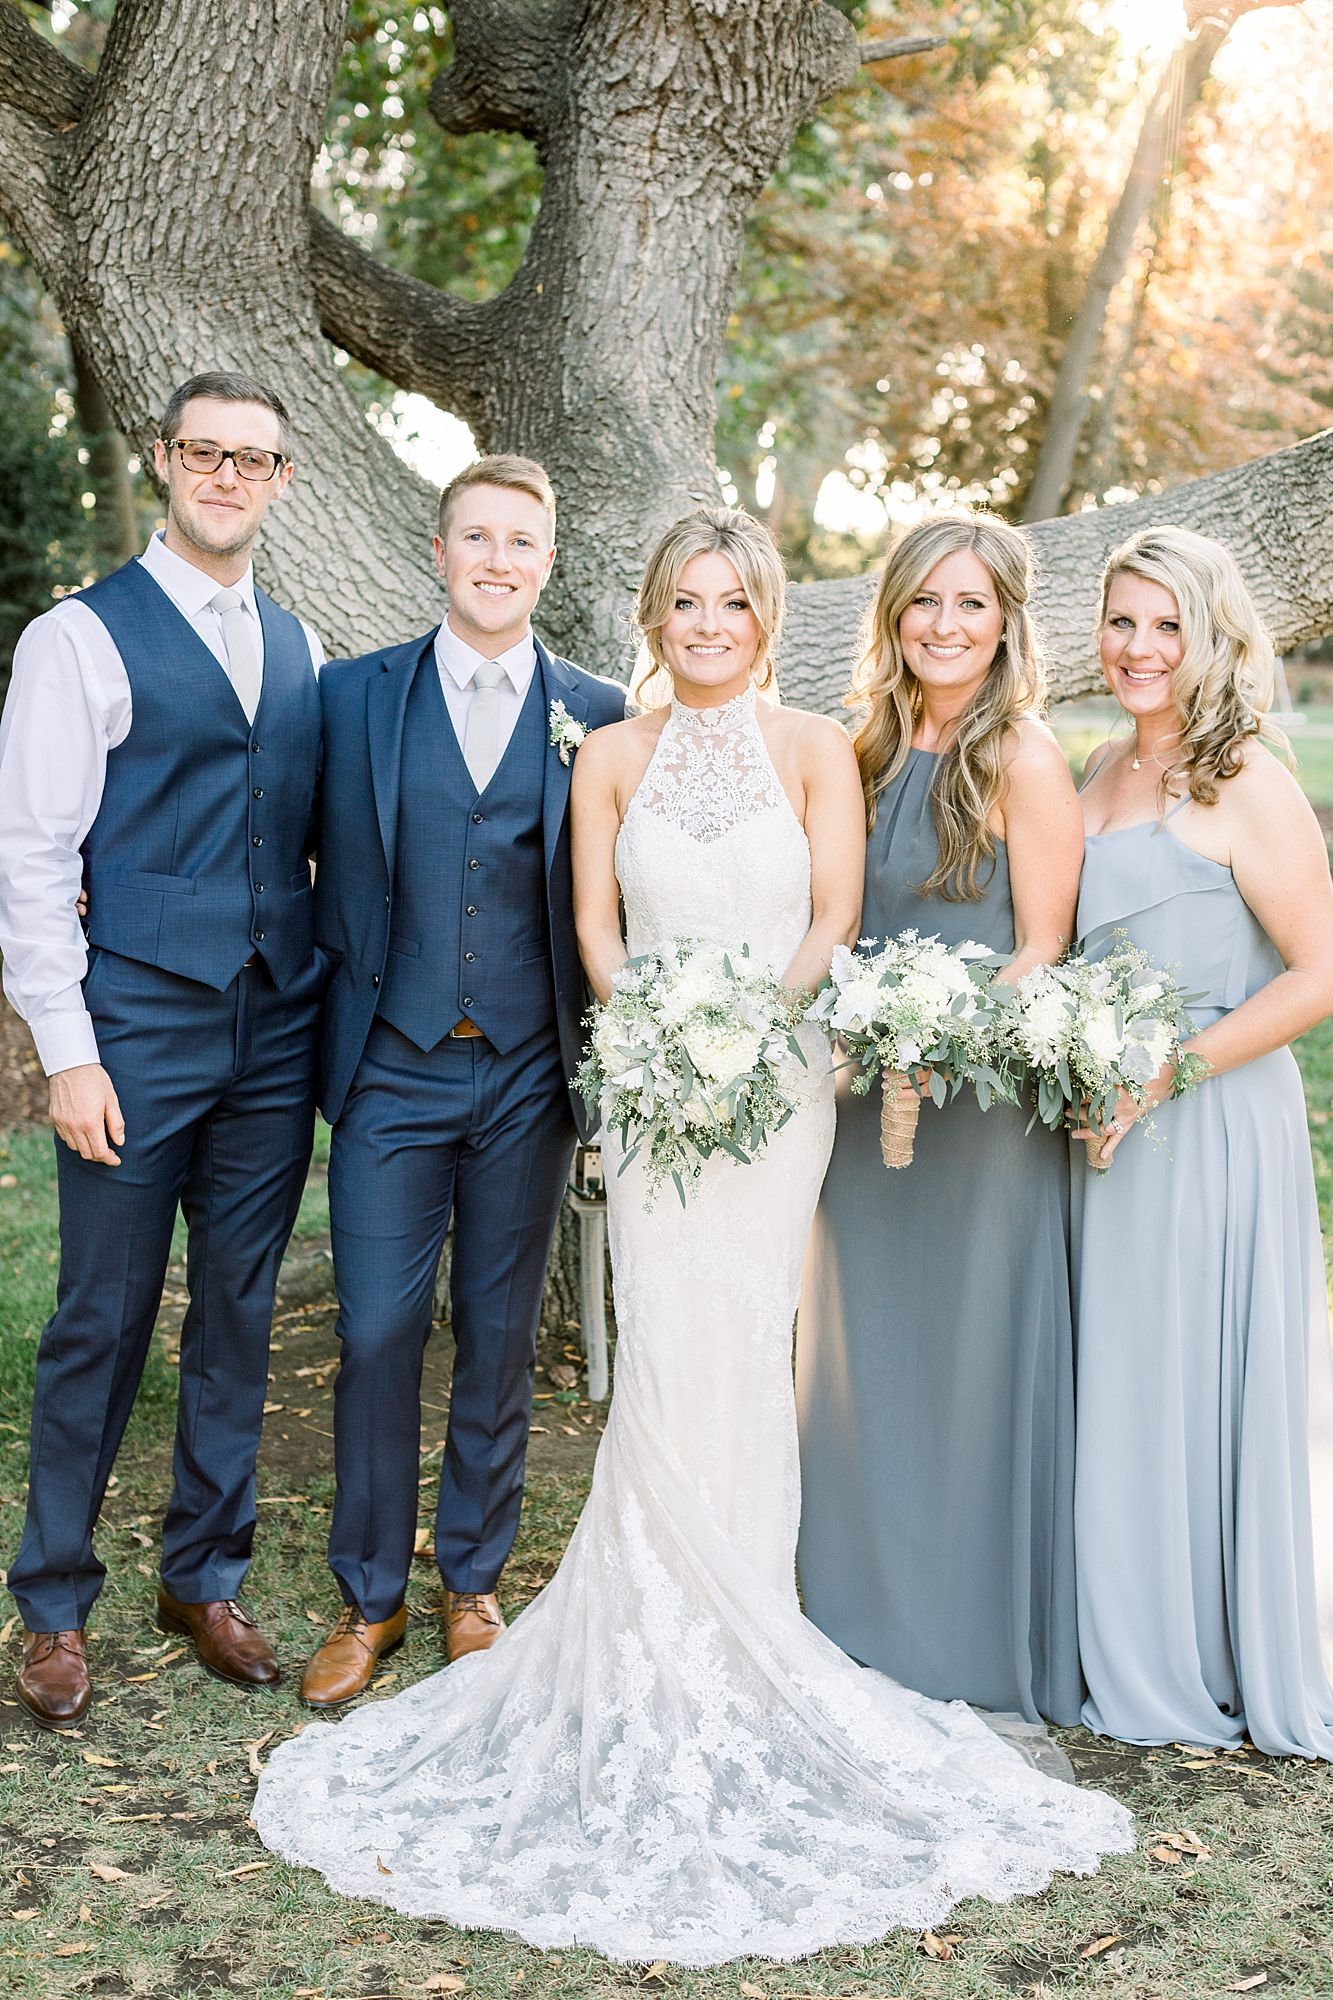 The Maples Wedding in Woodland California - Ashley Baumgartner - Sacramento Wedding Photographer - Sacramento Film Photographer_0047.jpg